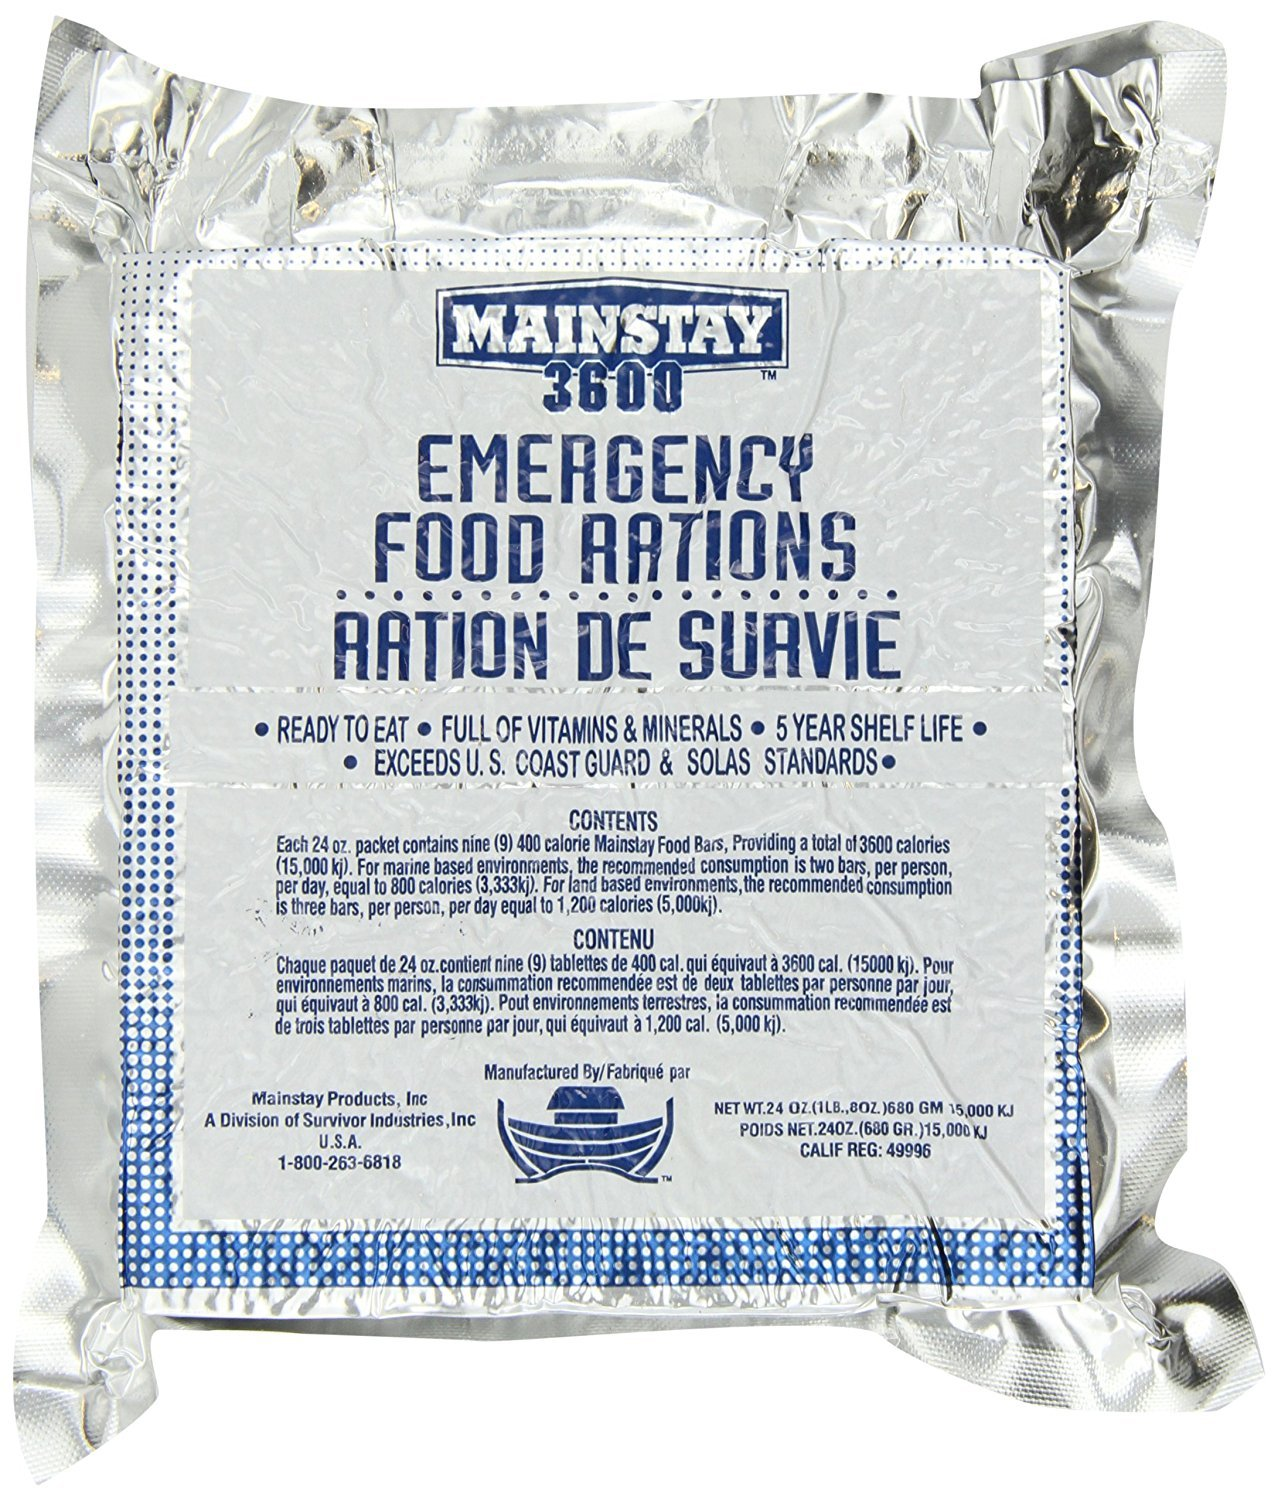 Mainstay Emergency Food Rations - 3600 Calorie Bars (Single) by Survivor Industries